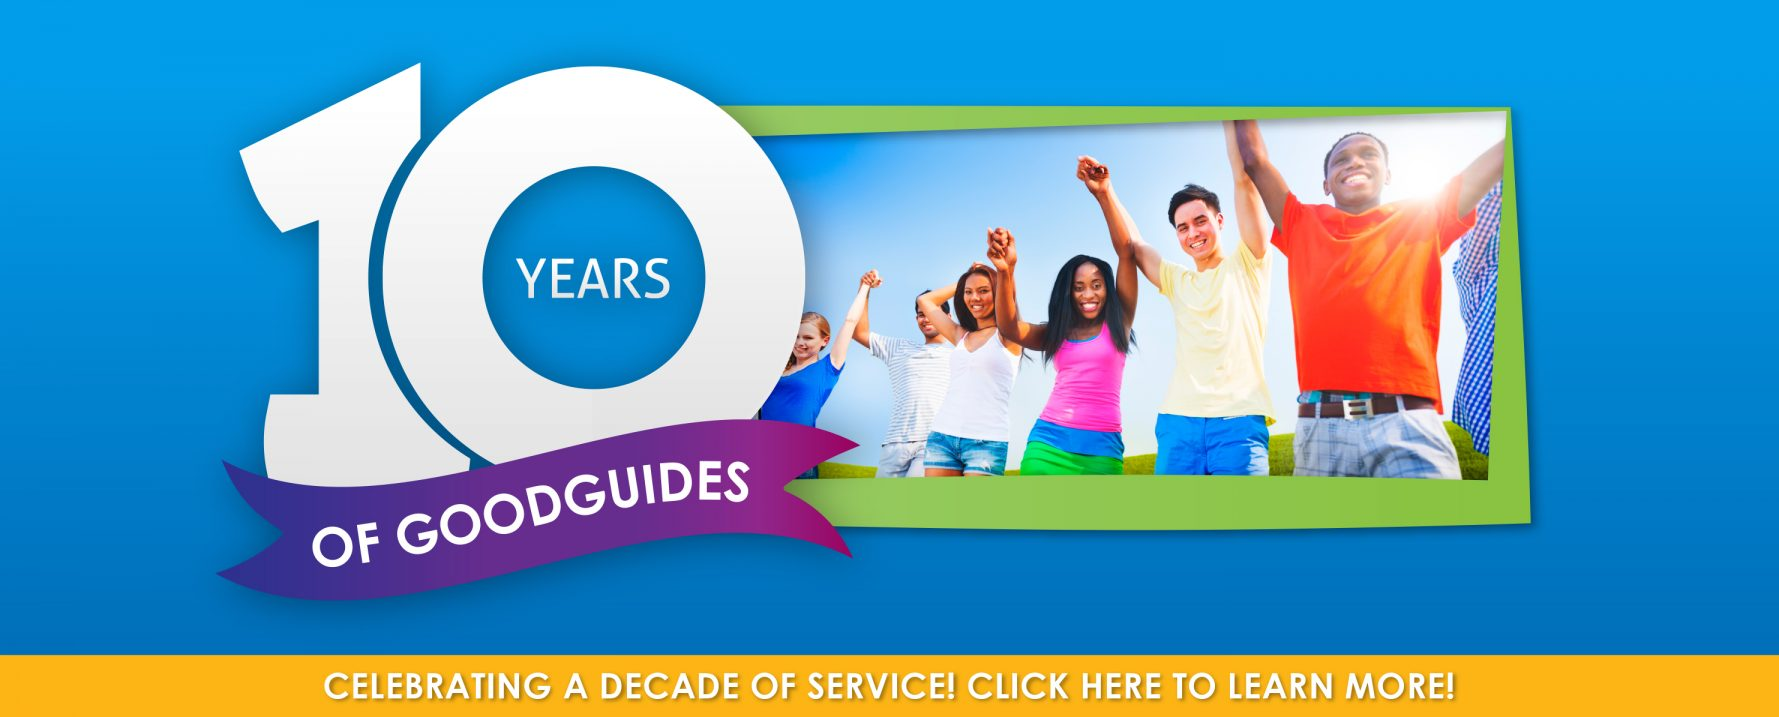 GoodGuides Celebrates a Decade of Service